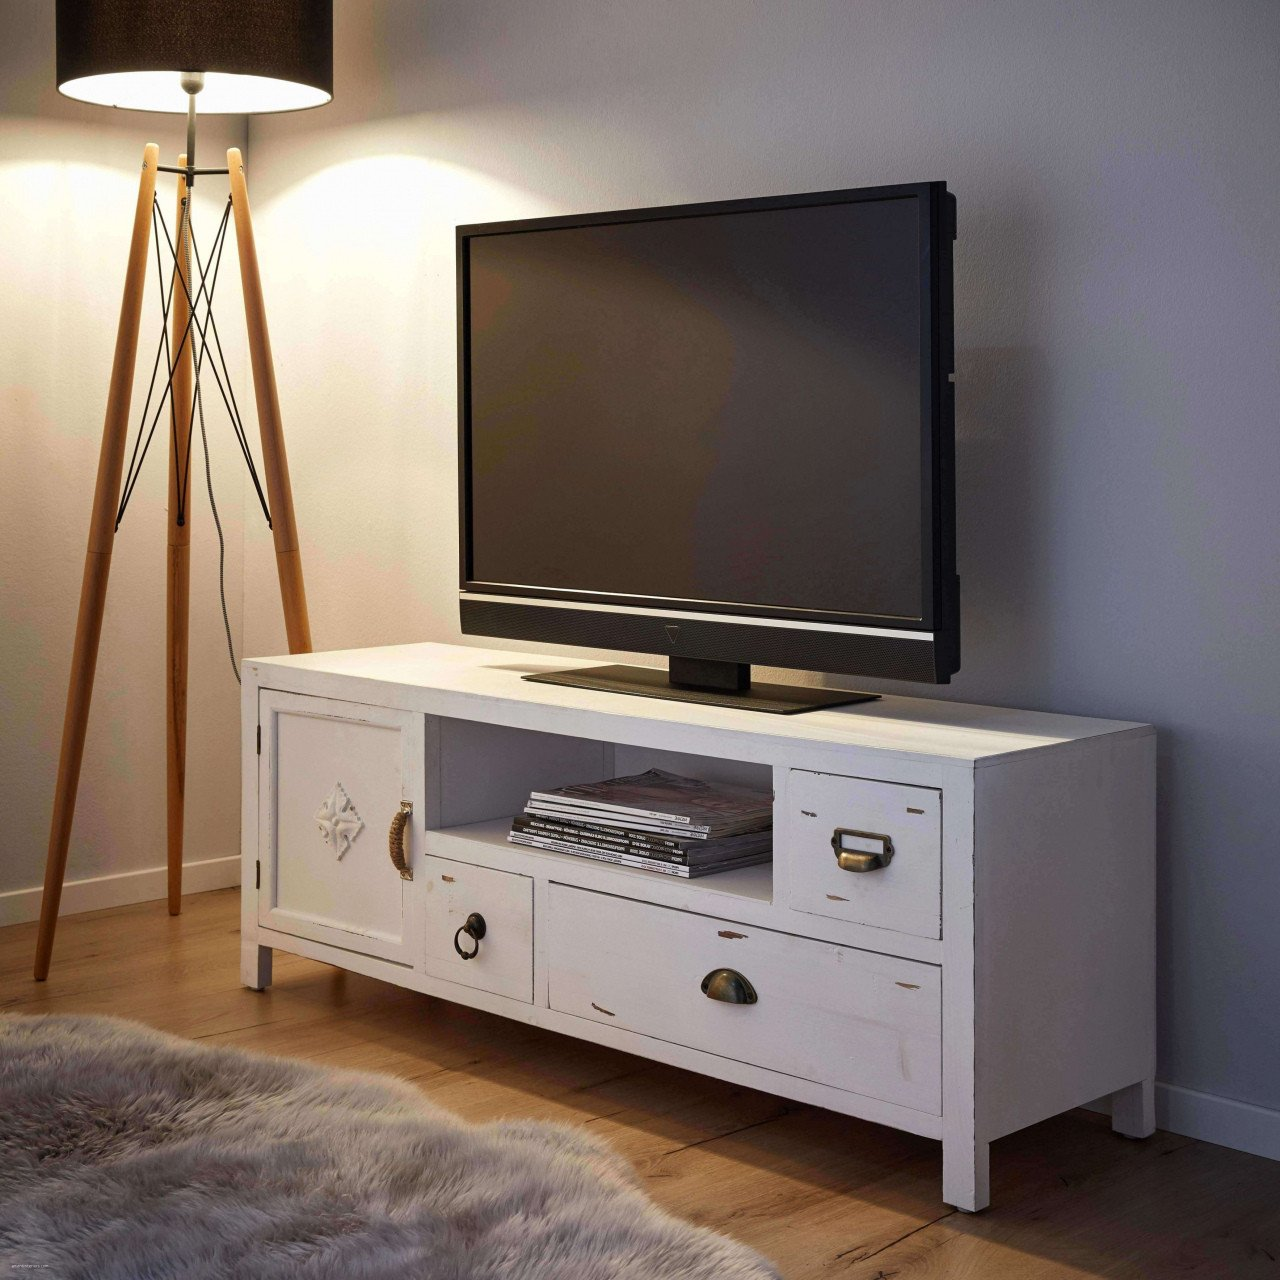 Tall Tv Stand for Bedroom Beautiful Bedroom Tv Stand — Procura Home Blog